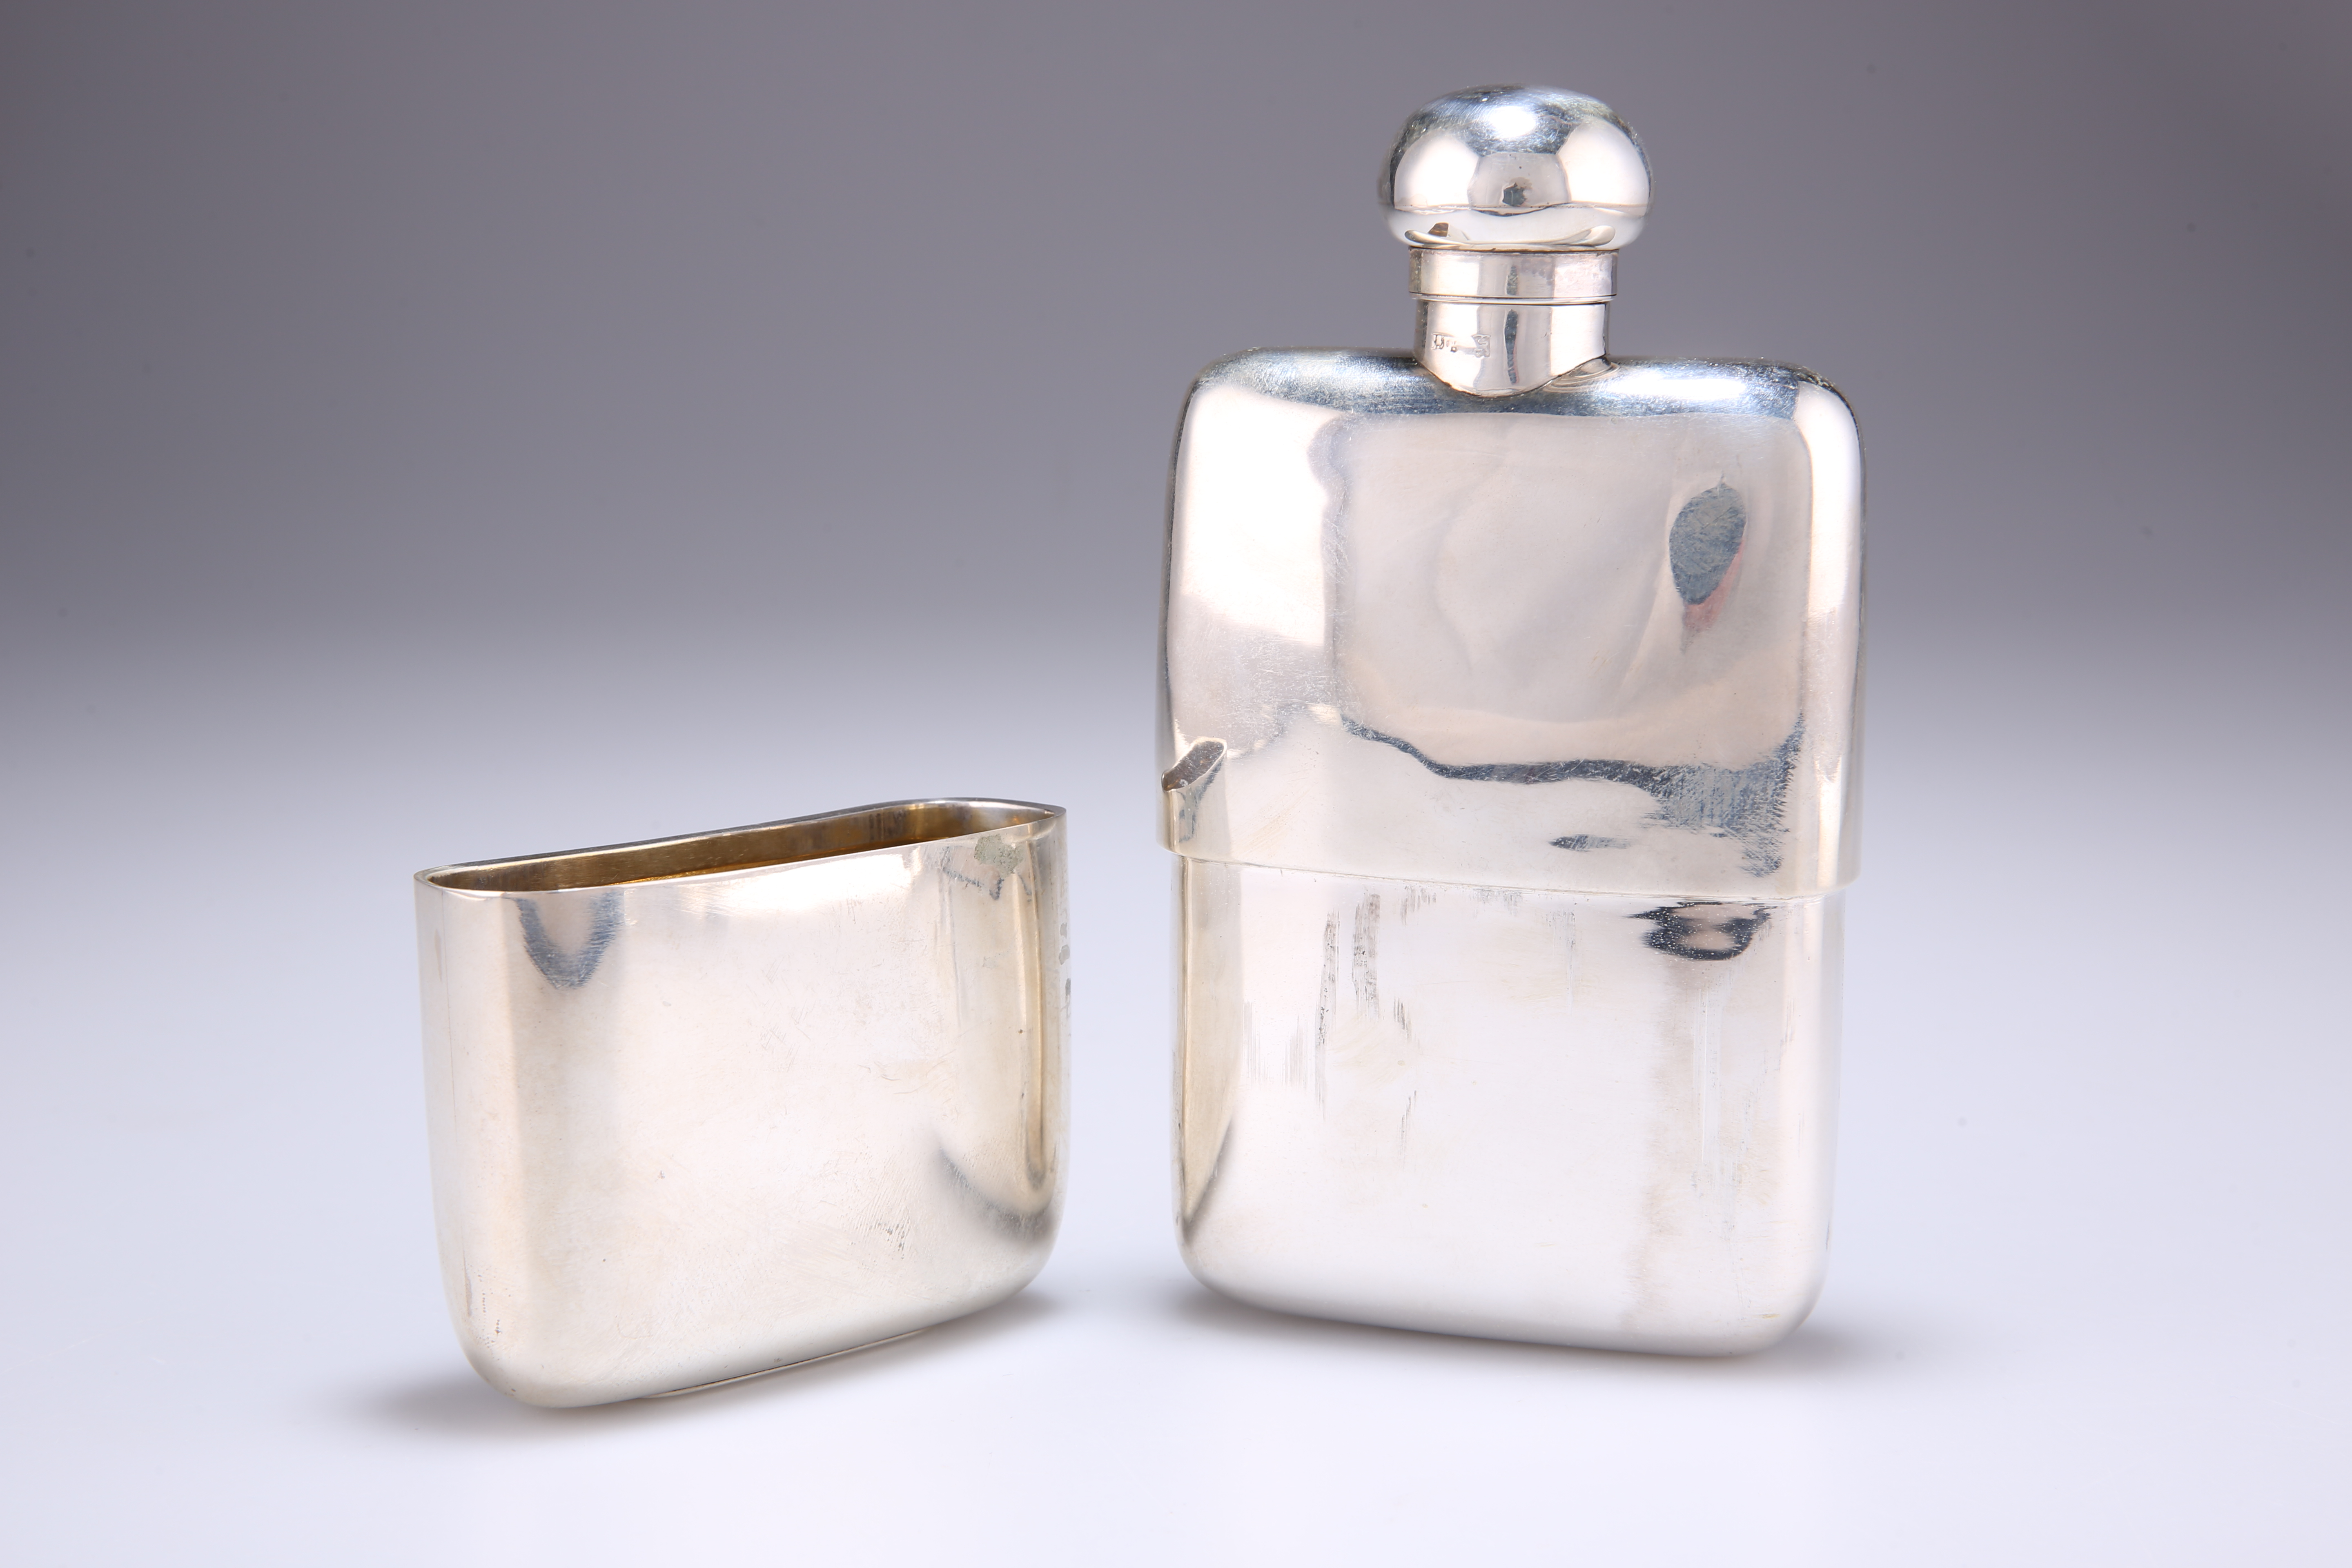 A GEORGE V SILVER HIP FLASK AND CUP - Image 3 of 4